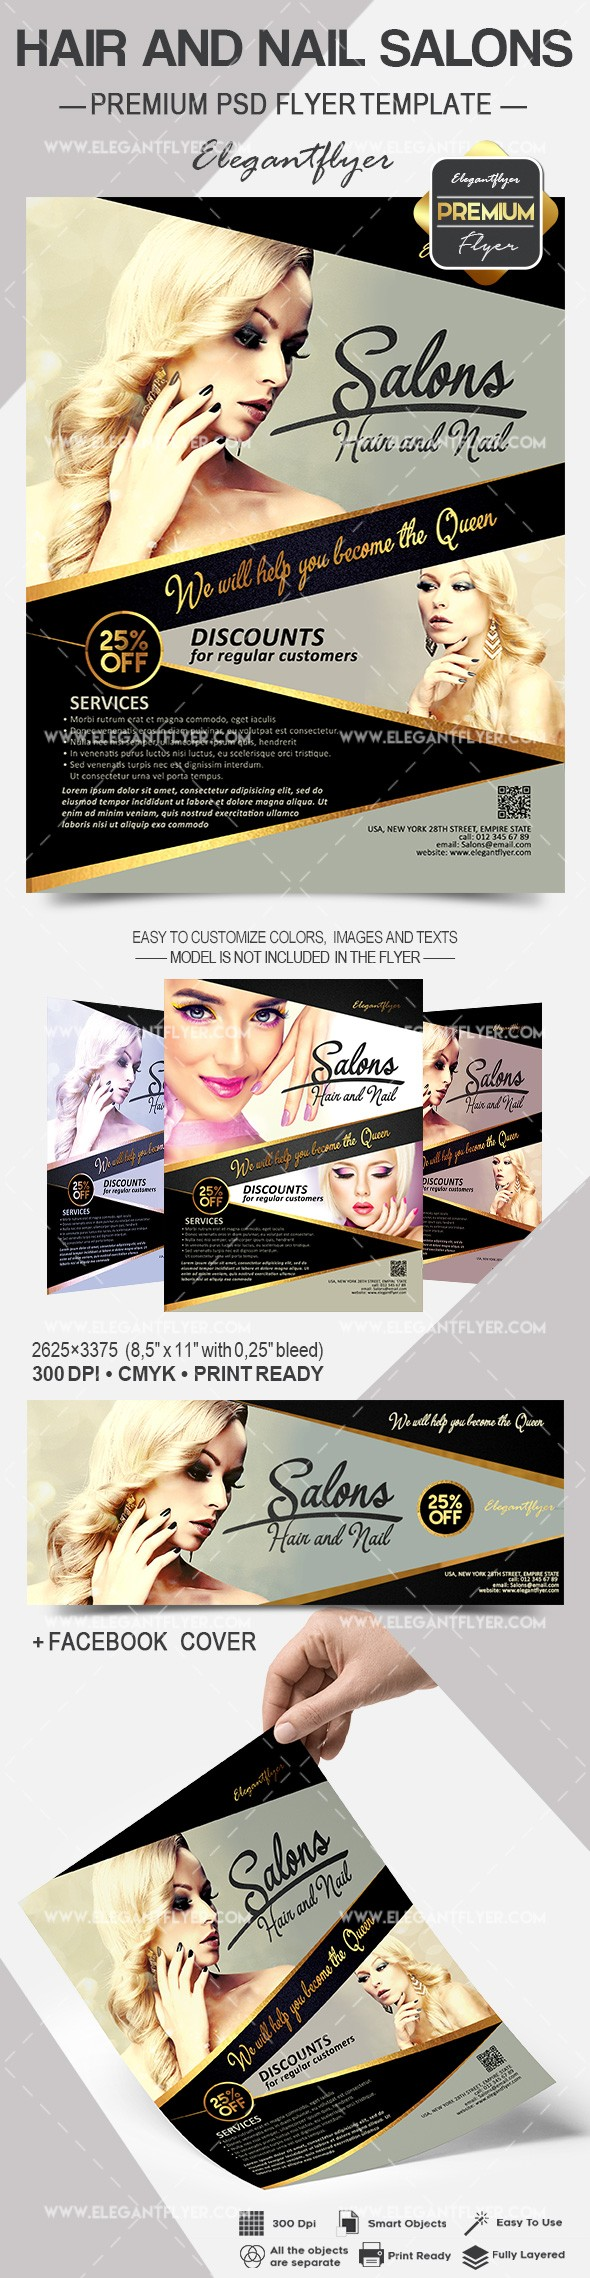 Hair and Nail Salons – Flyer PSD Template